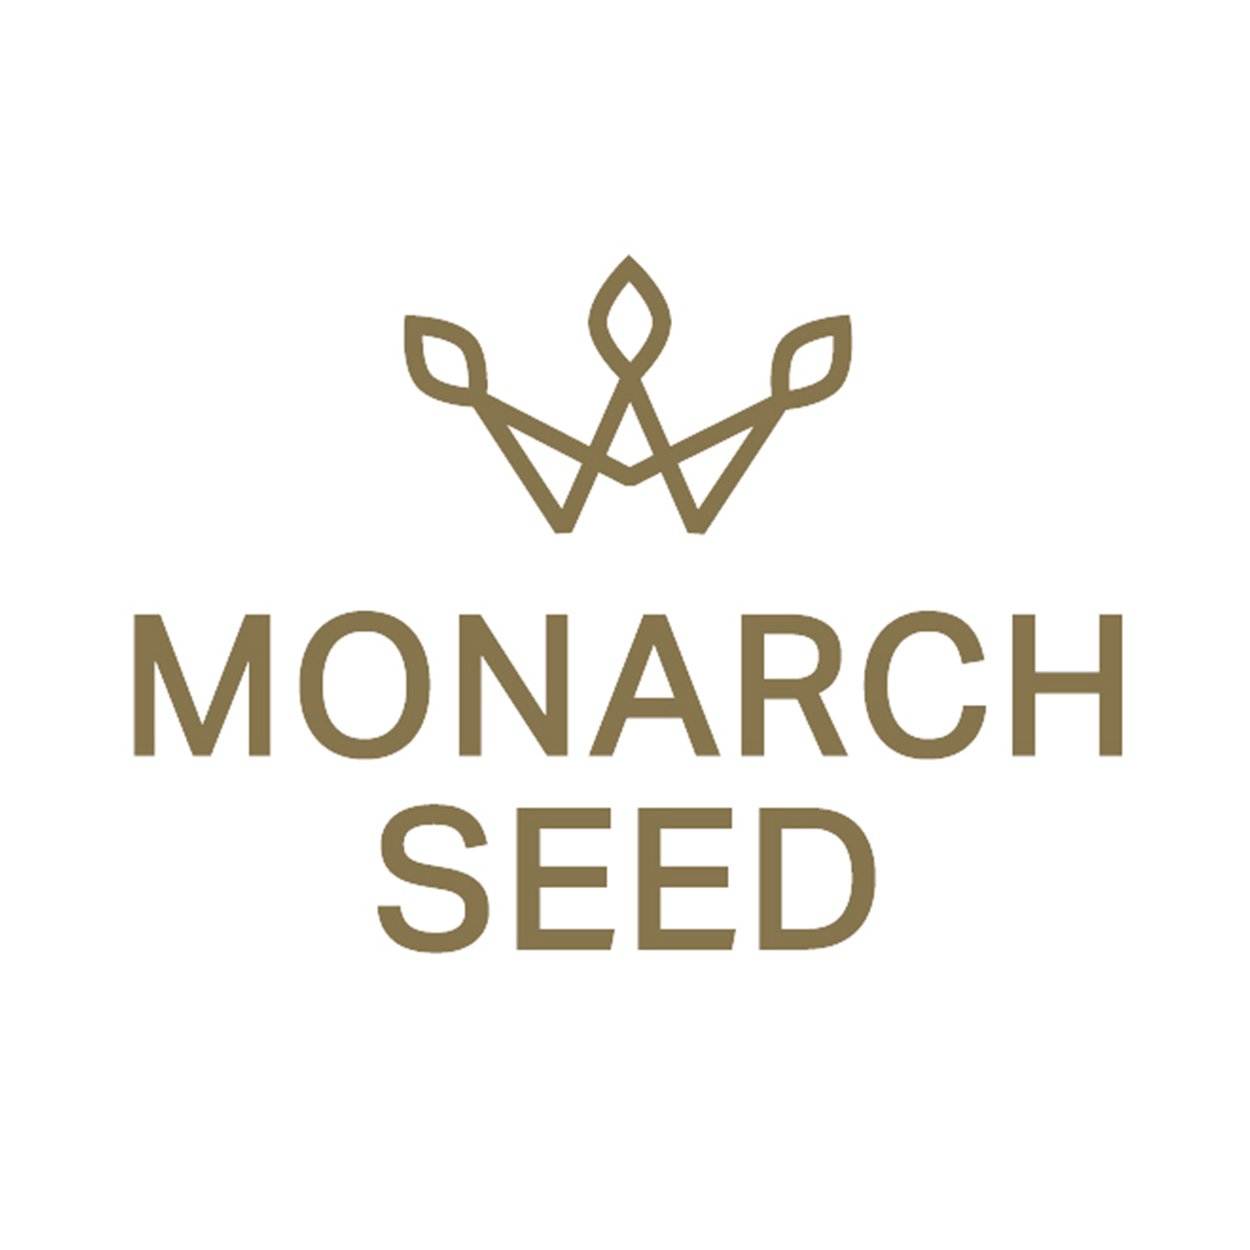 MONARCH SEED